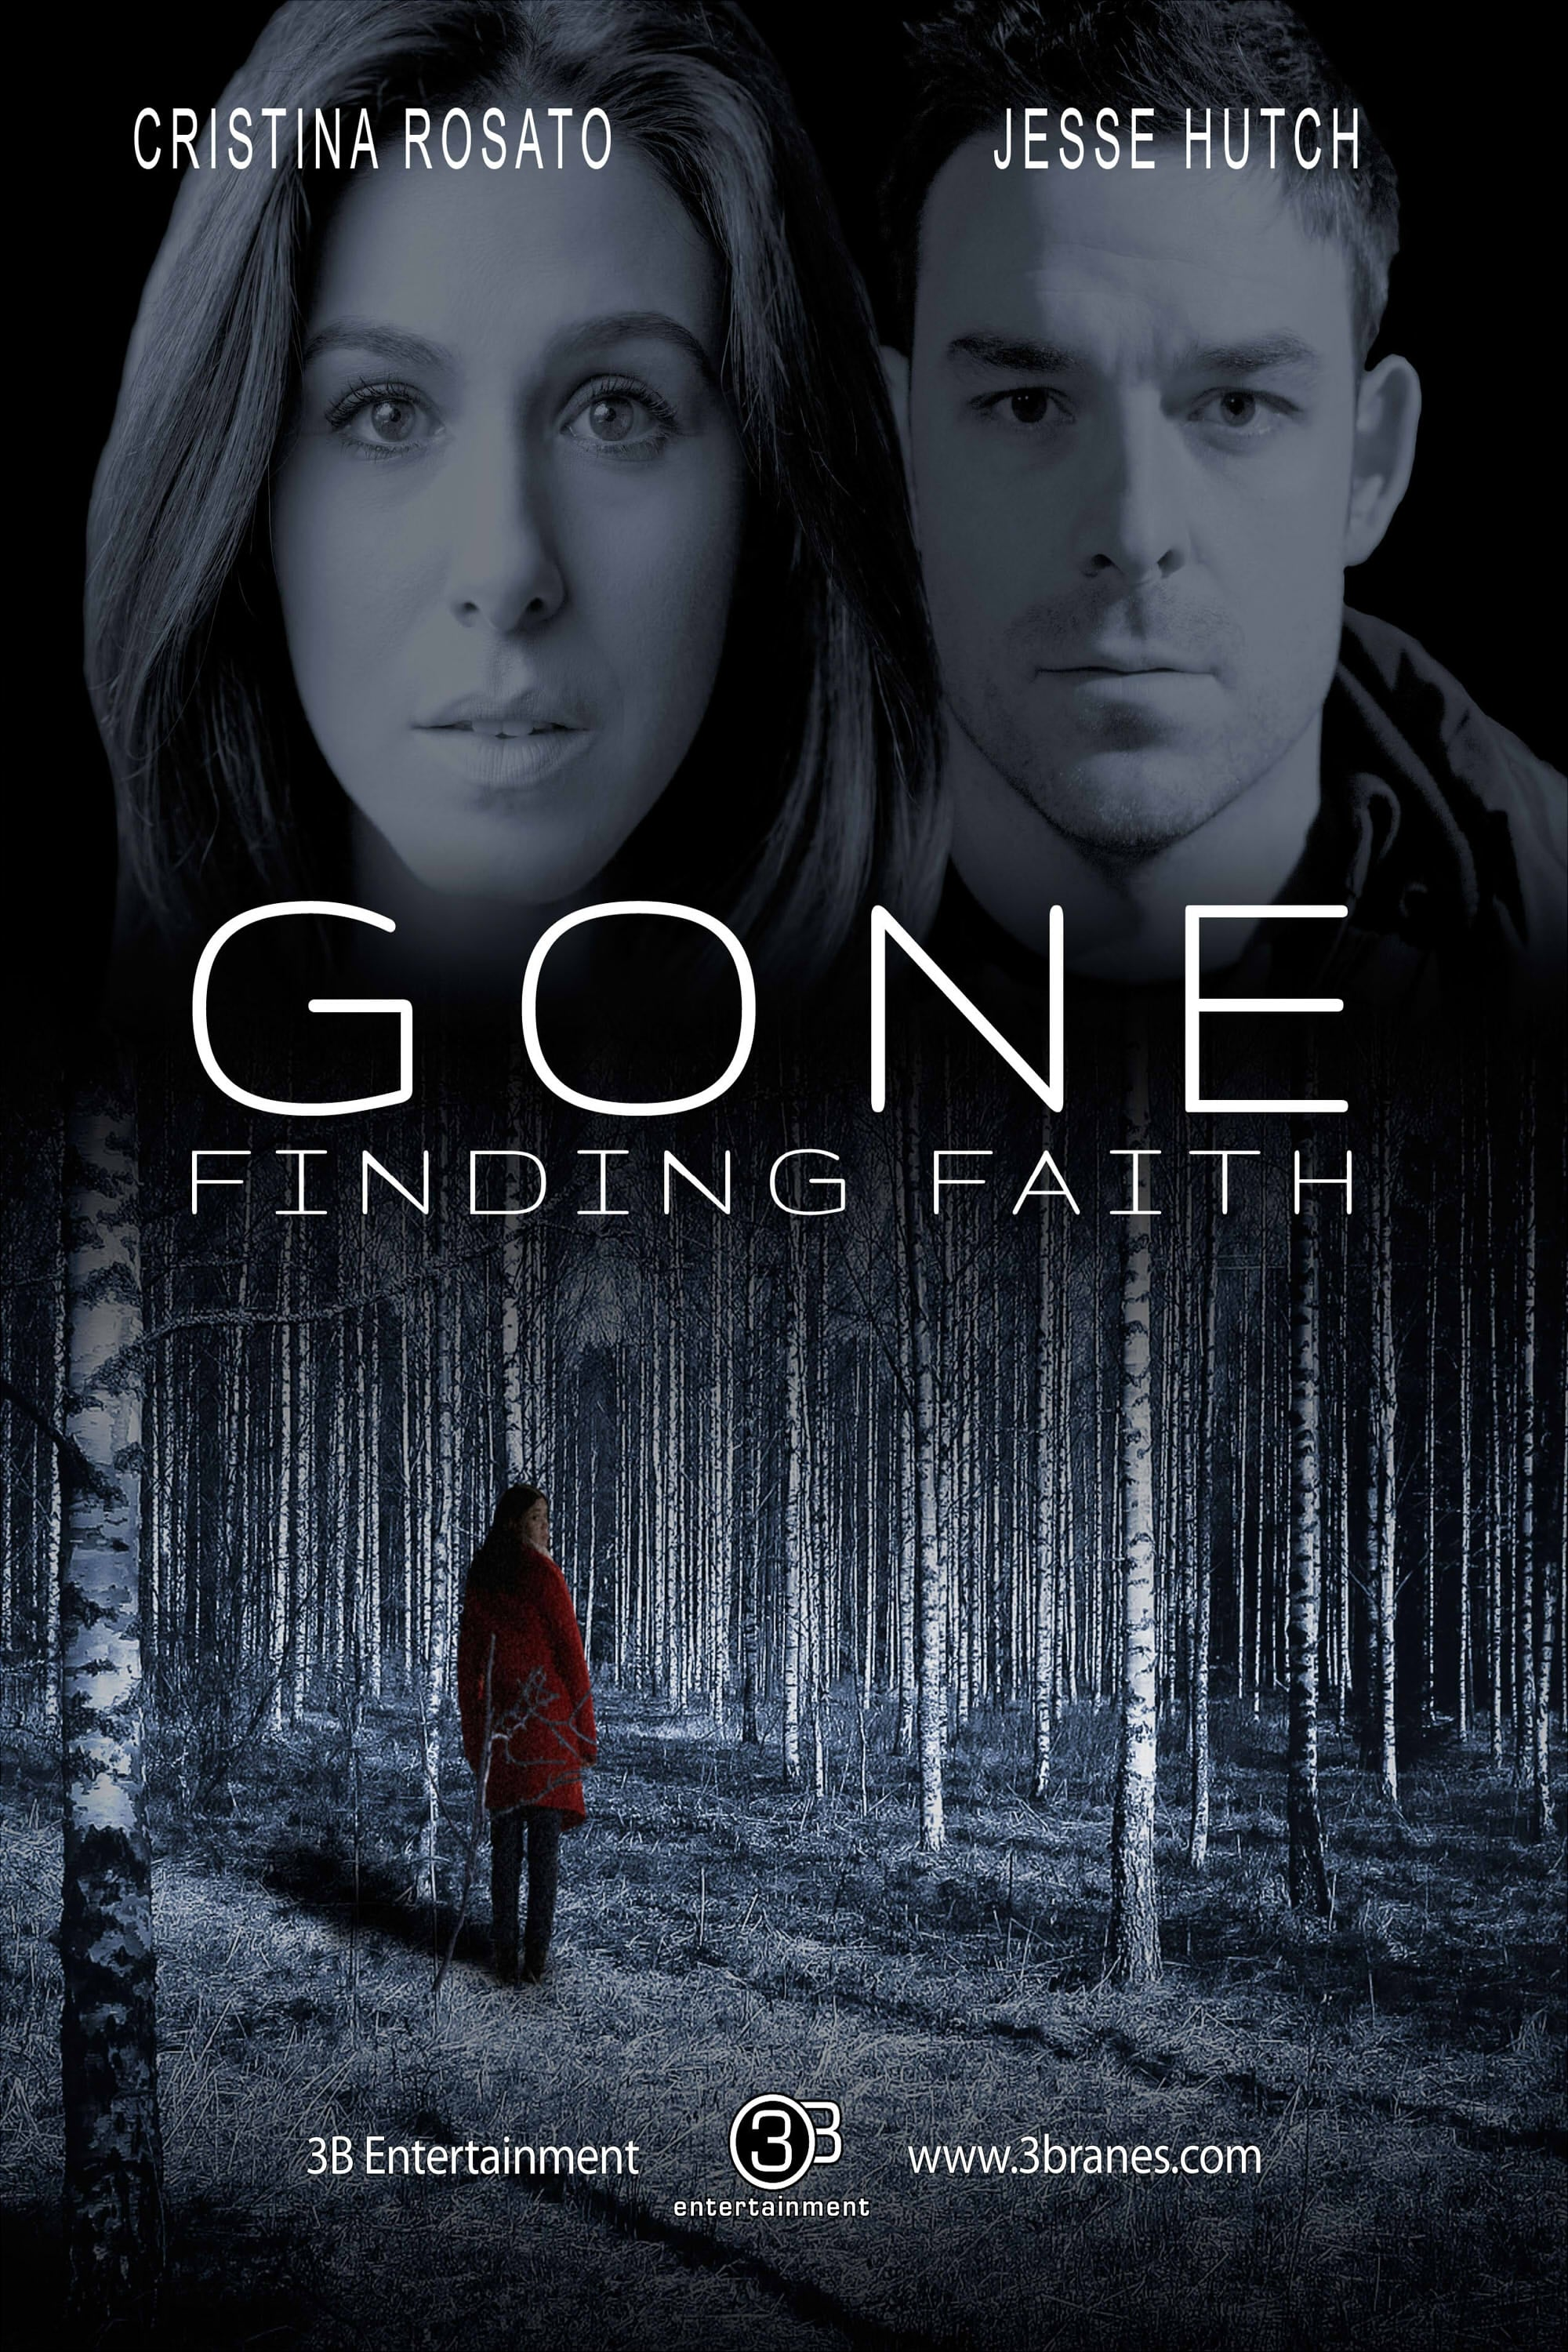 GONE: My Daughter (2018)